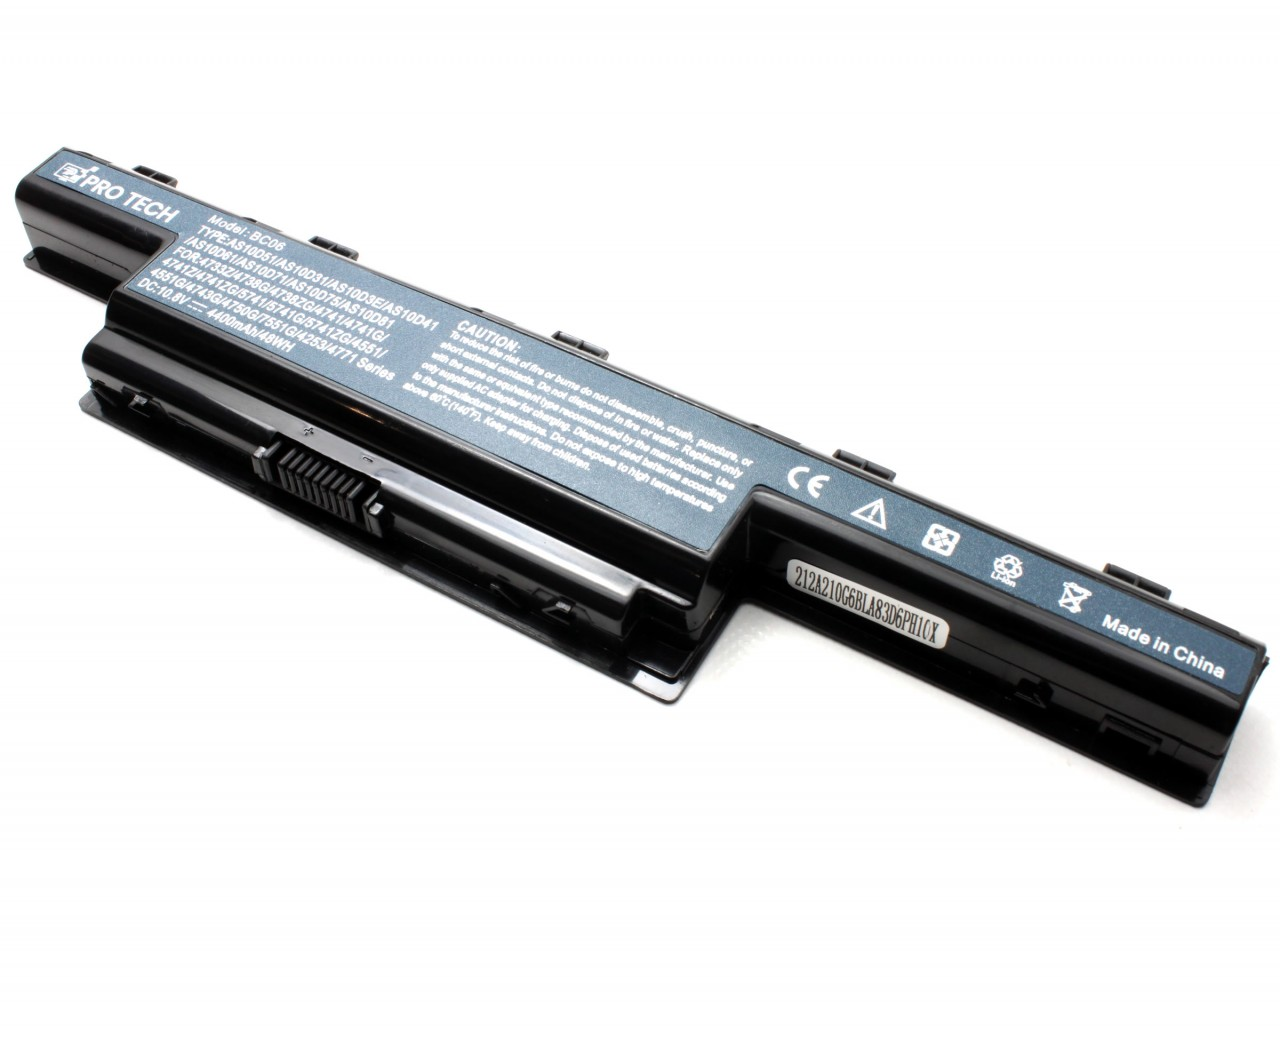 Baterie Packard Bell EasyNote TM01 6 celule imagine powerlaptop.ro 2021